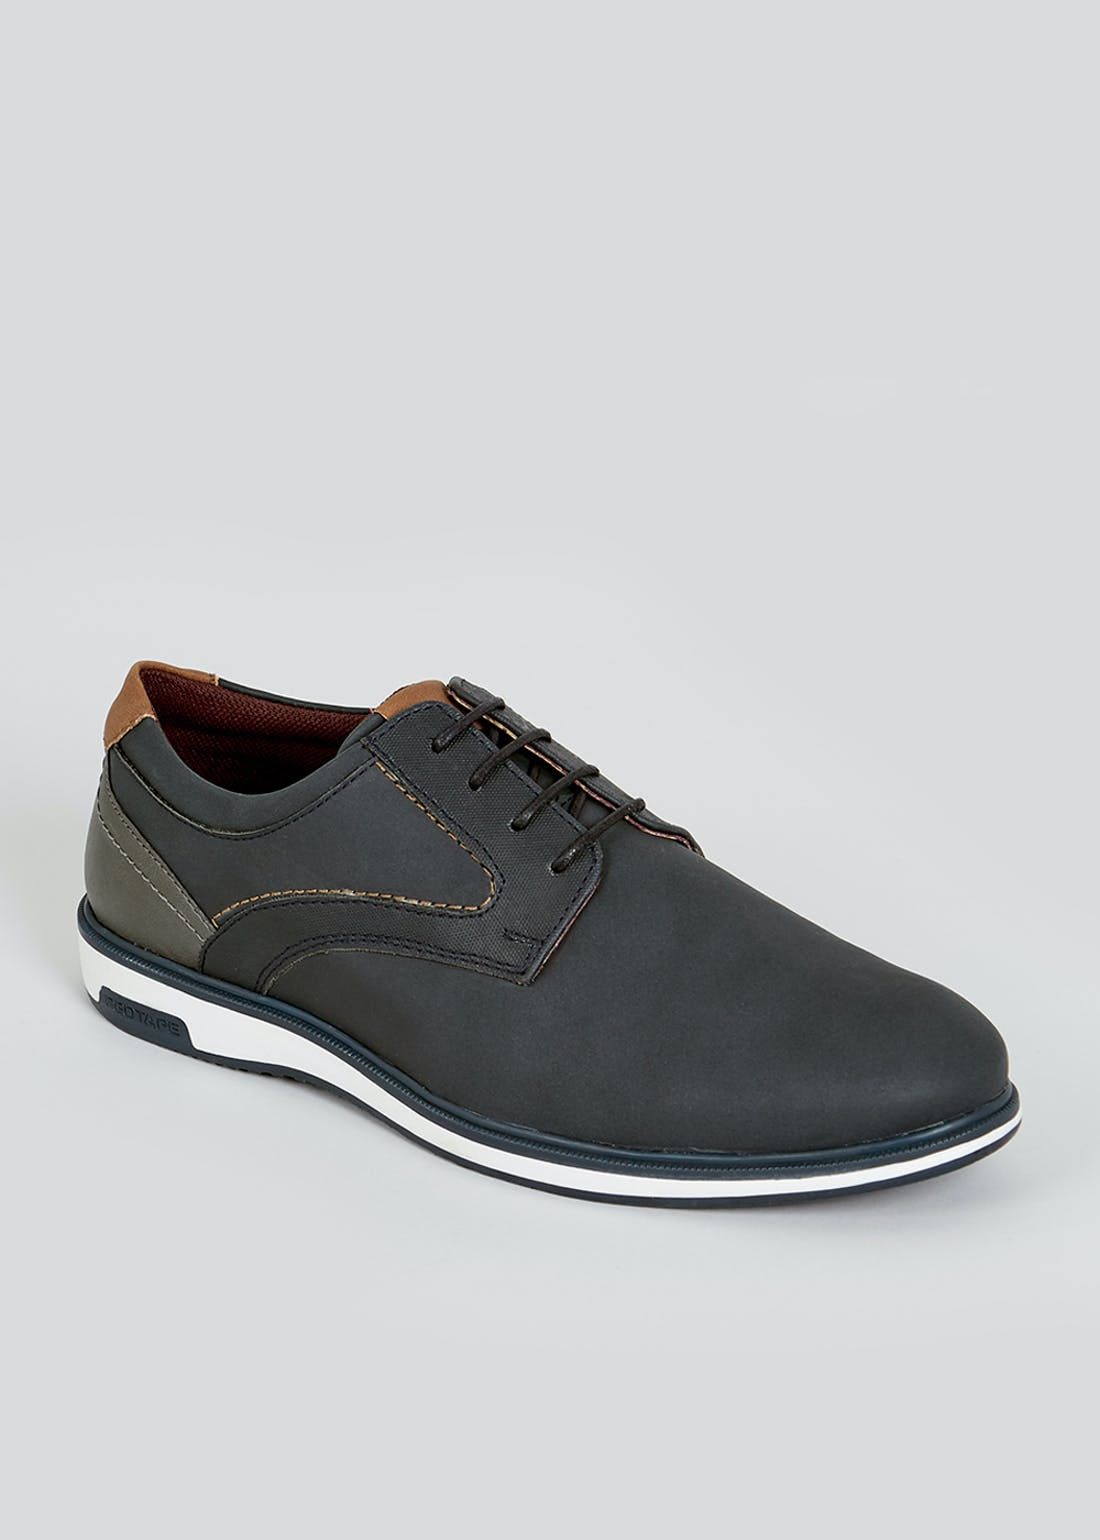 Navy Casual Gibson Shoes